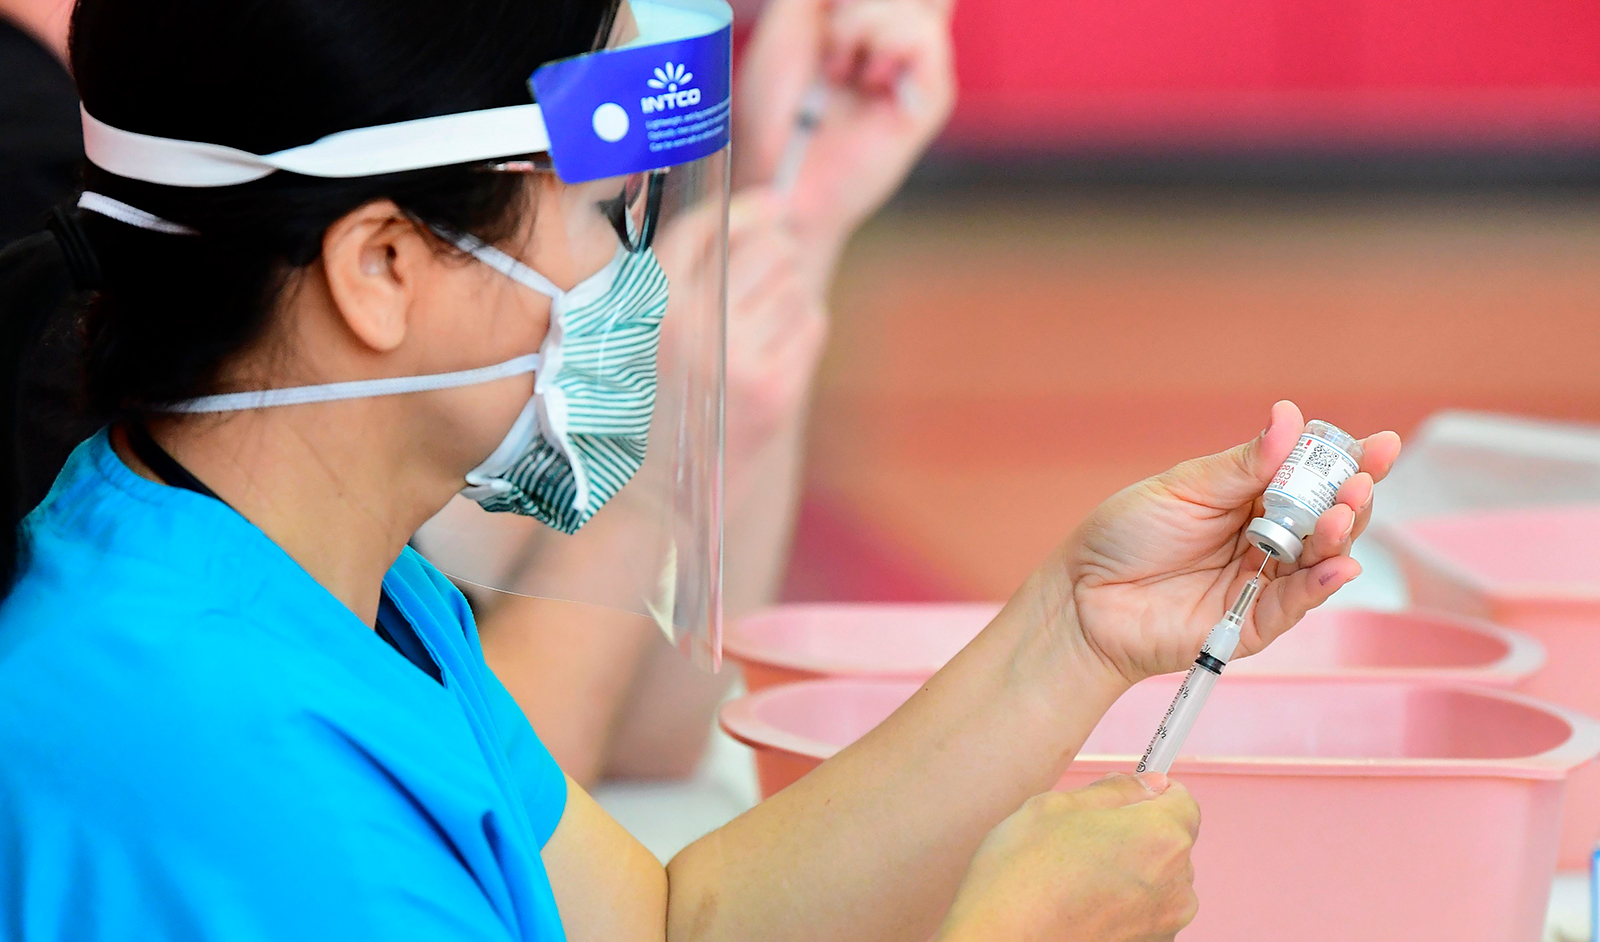 Registered nurses transfer the Moderna Covid-19 vaccine from a bottle into a syringe ready for vaccination at the Corona High School gymnasium in Corona, California on January 15